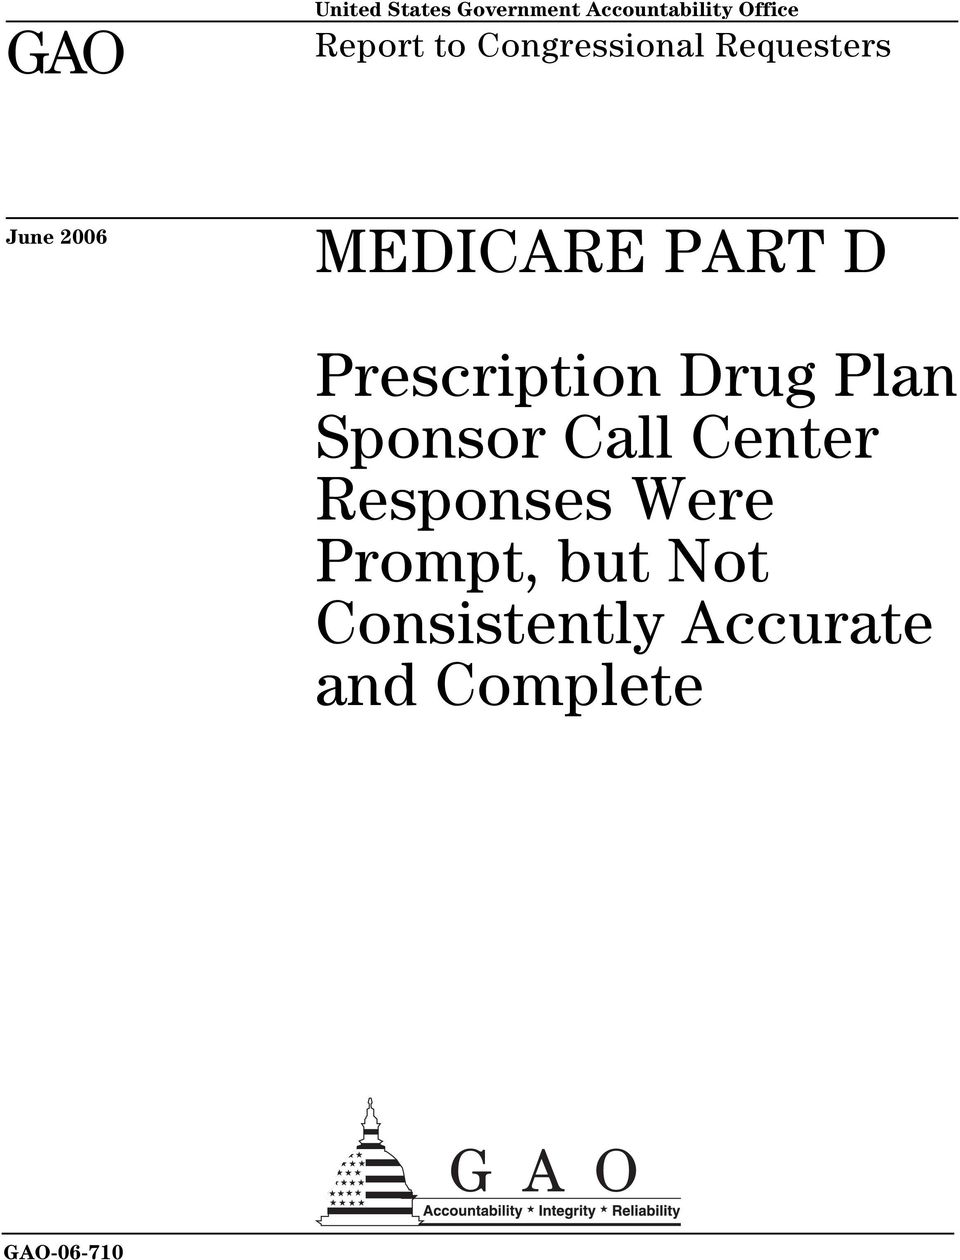 Prescription Drug Plan Sponsor Call Center Responses Were